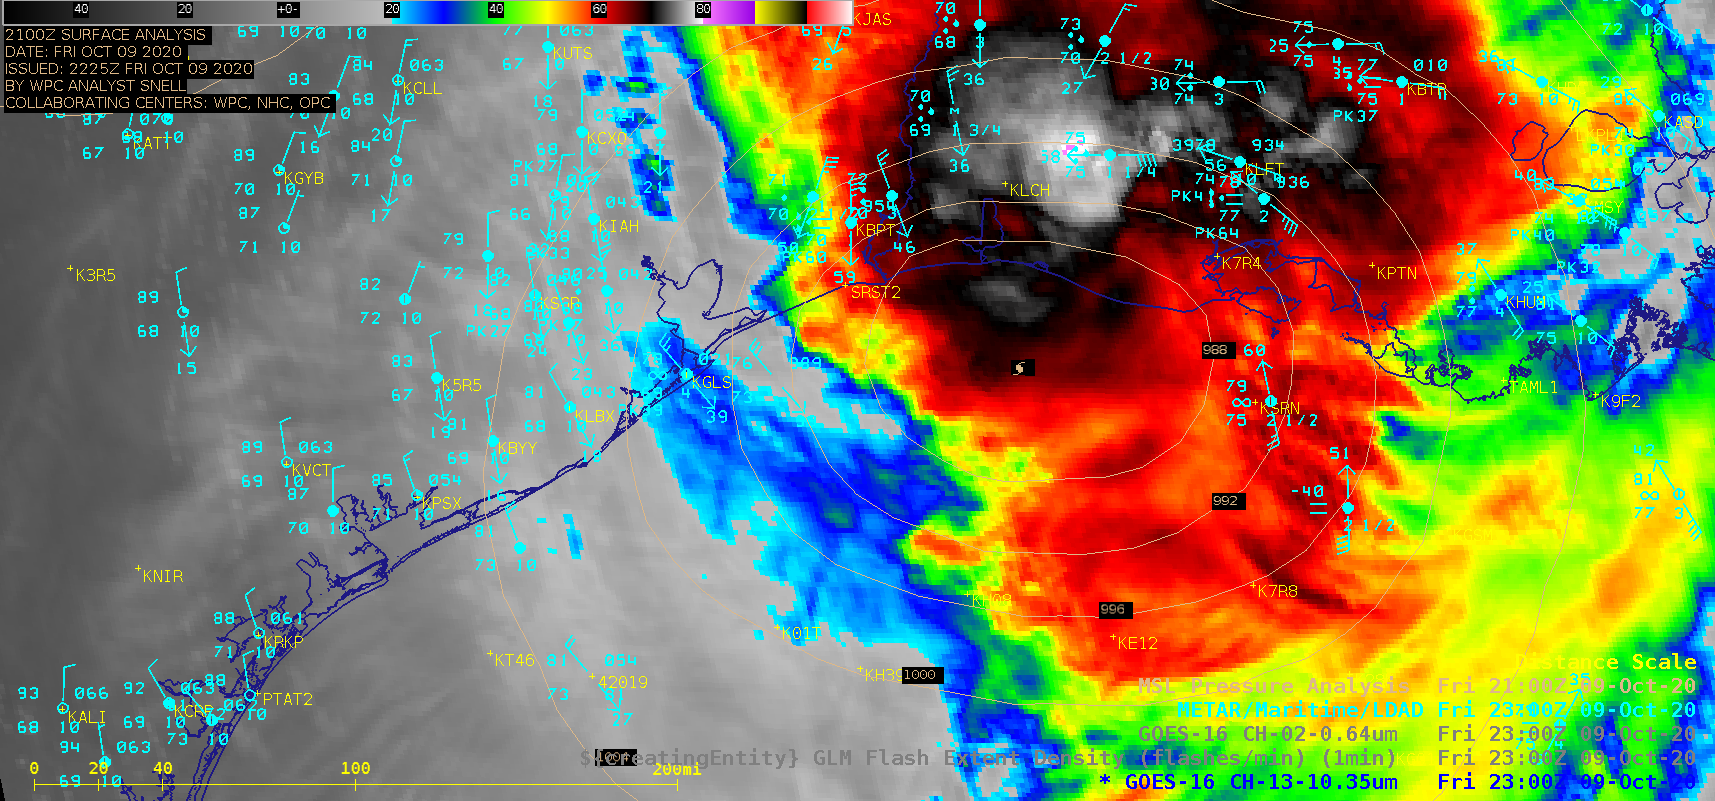 """GOES-16 """"Clean"""" Infrared Window (10.35 µm) images (with and without an overlay of GLM Flash Extent Density) and """"Red"""" Visible (0.64 µm) images [click to play animation 